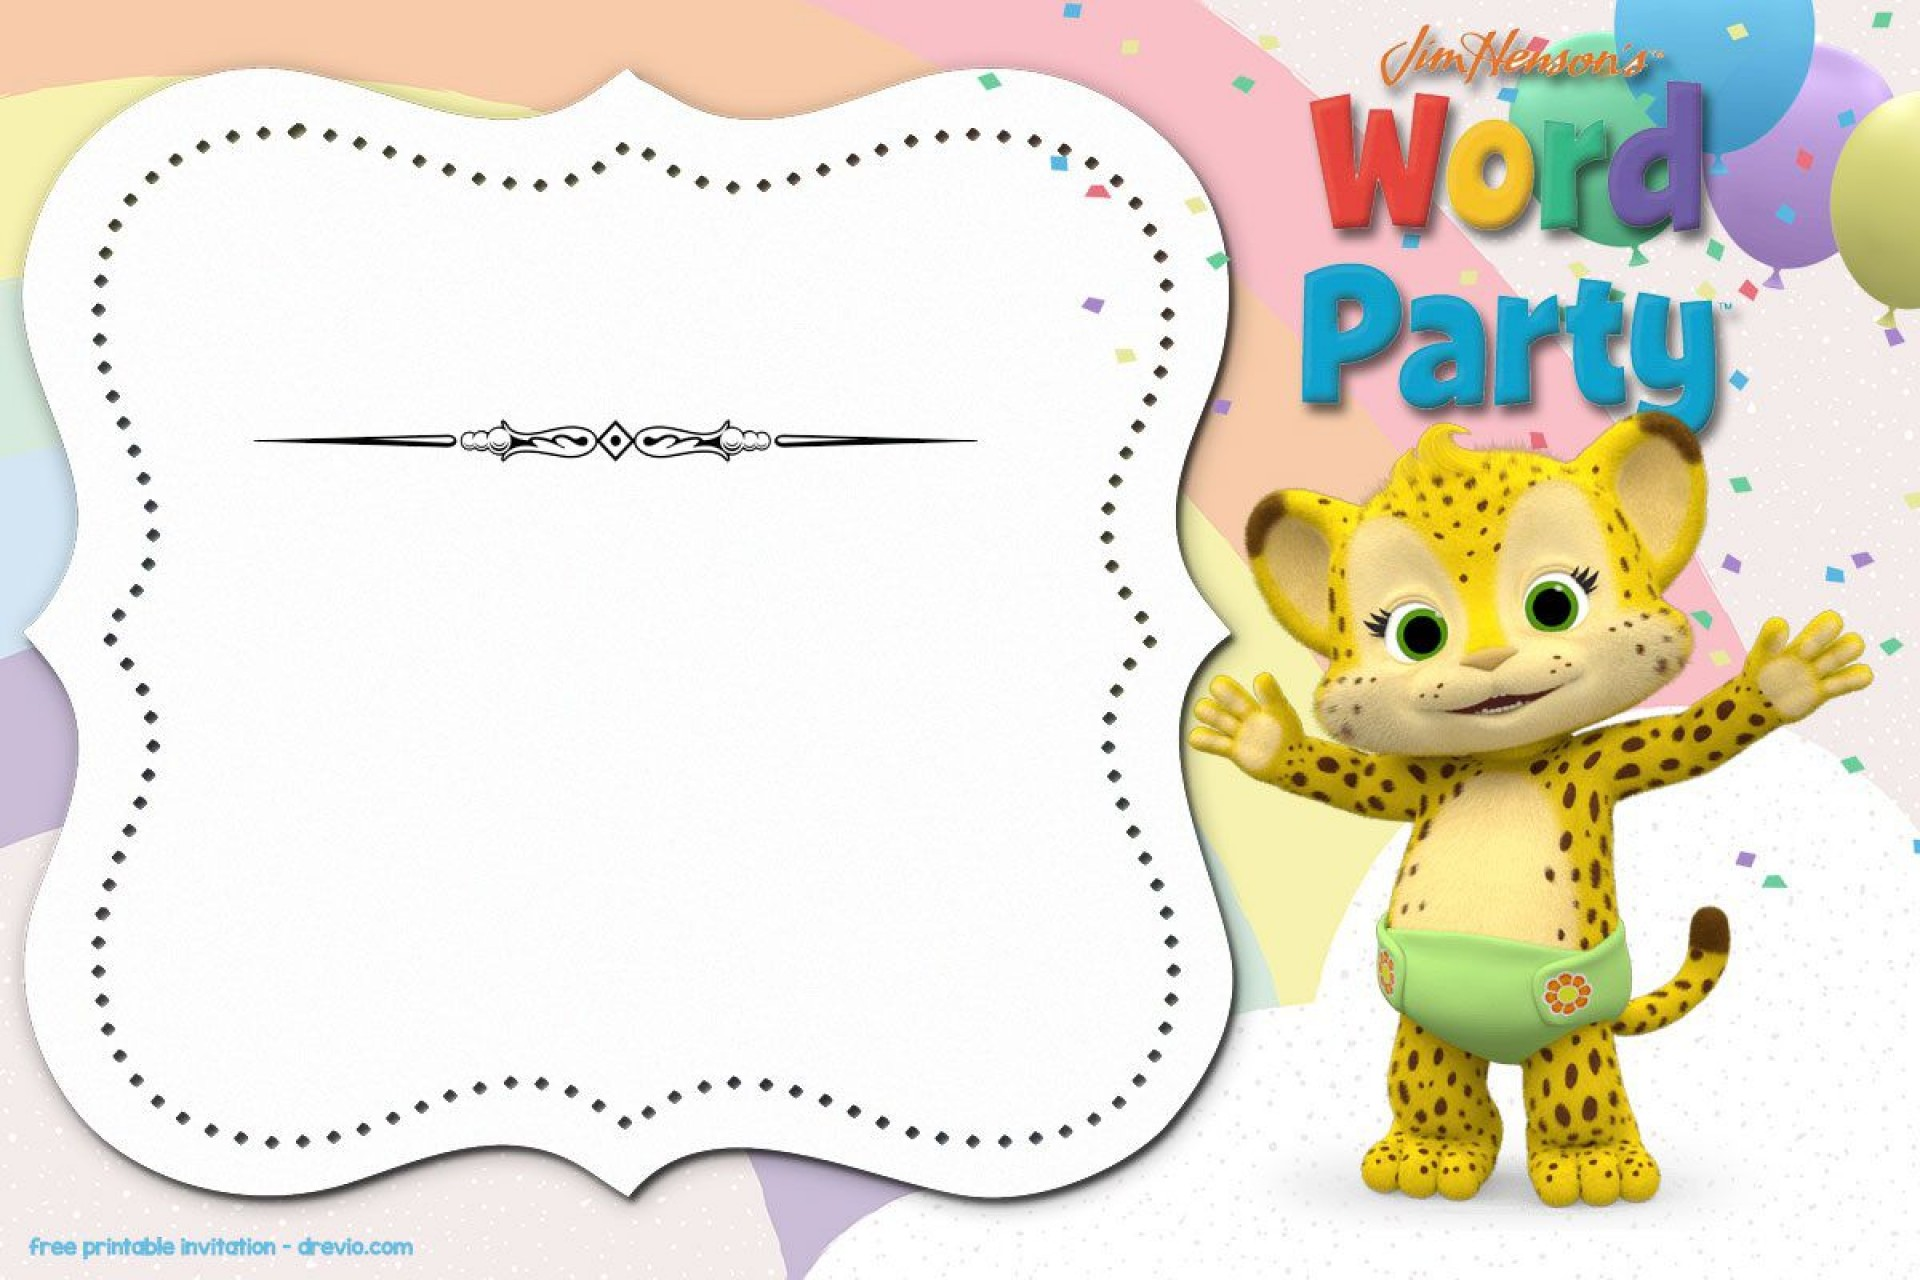 008 Fascinating Party Invitation Template Word High Definition  Dinner Summer Wording Sample Unicorn Birthday1920